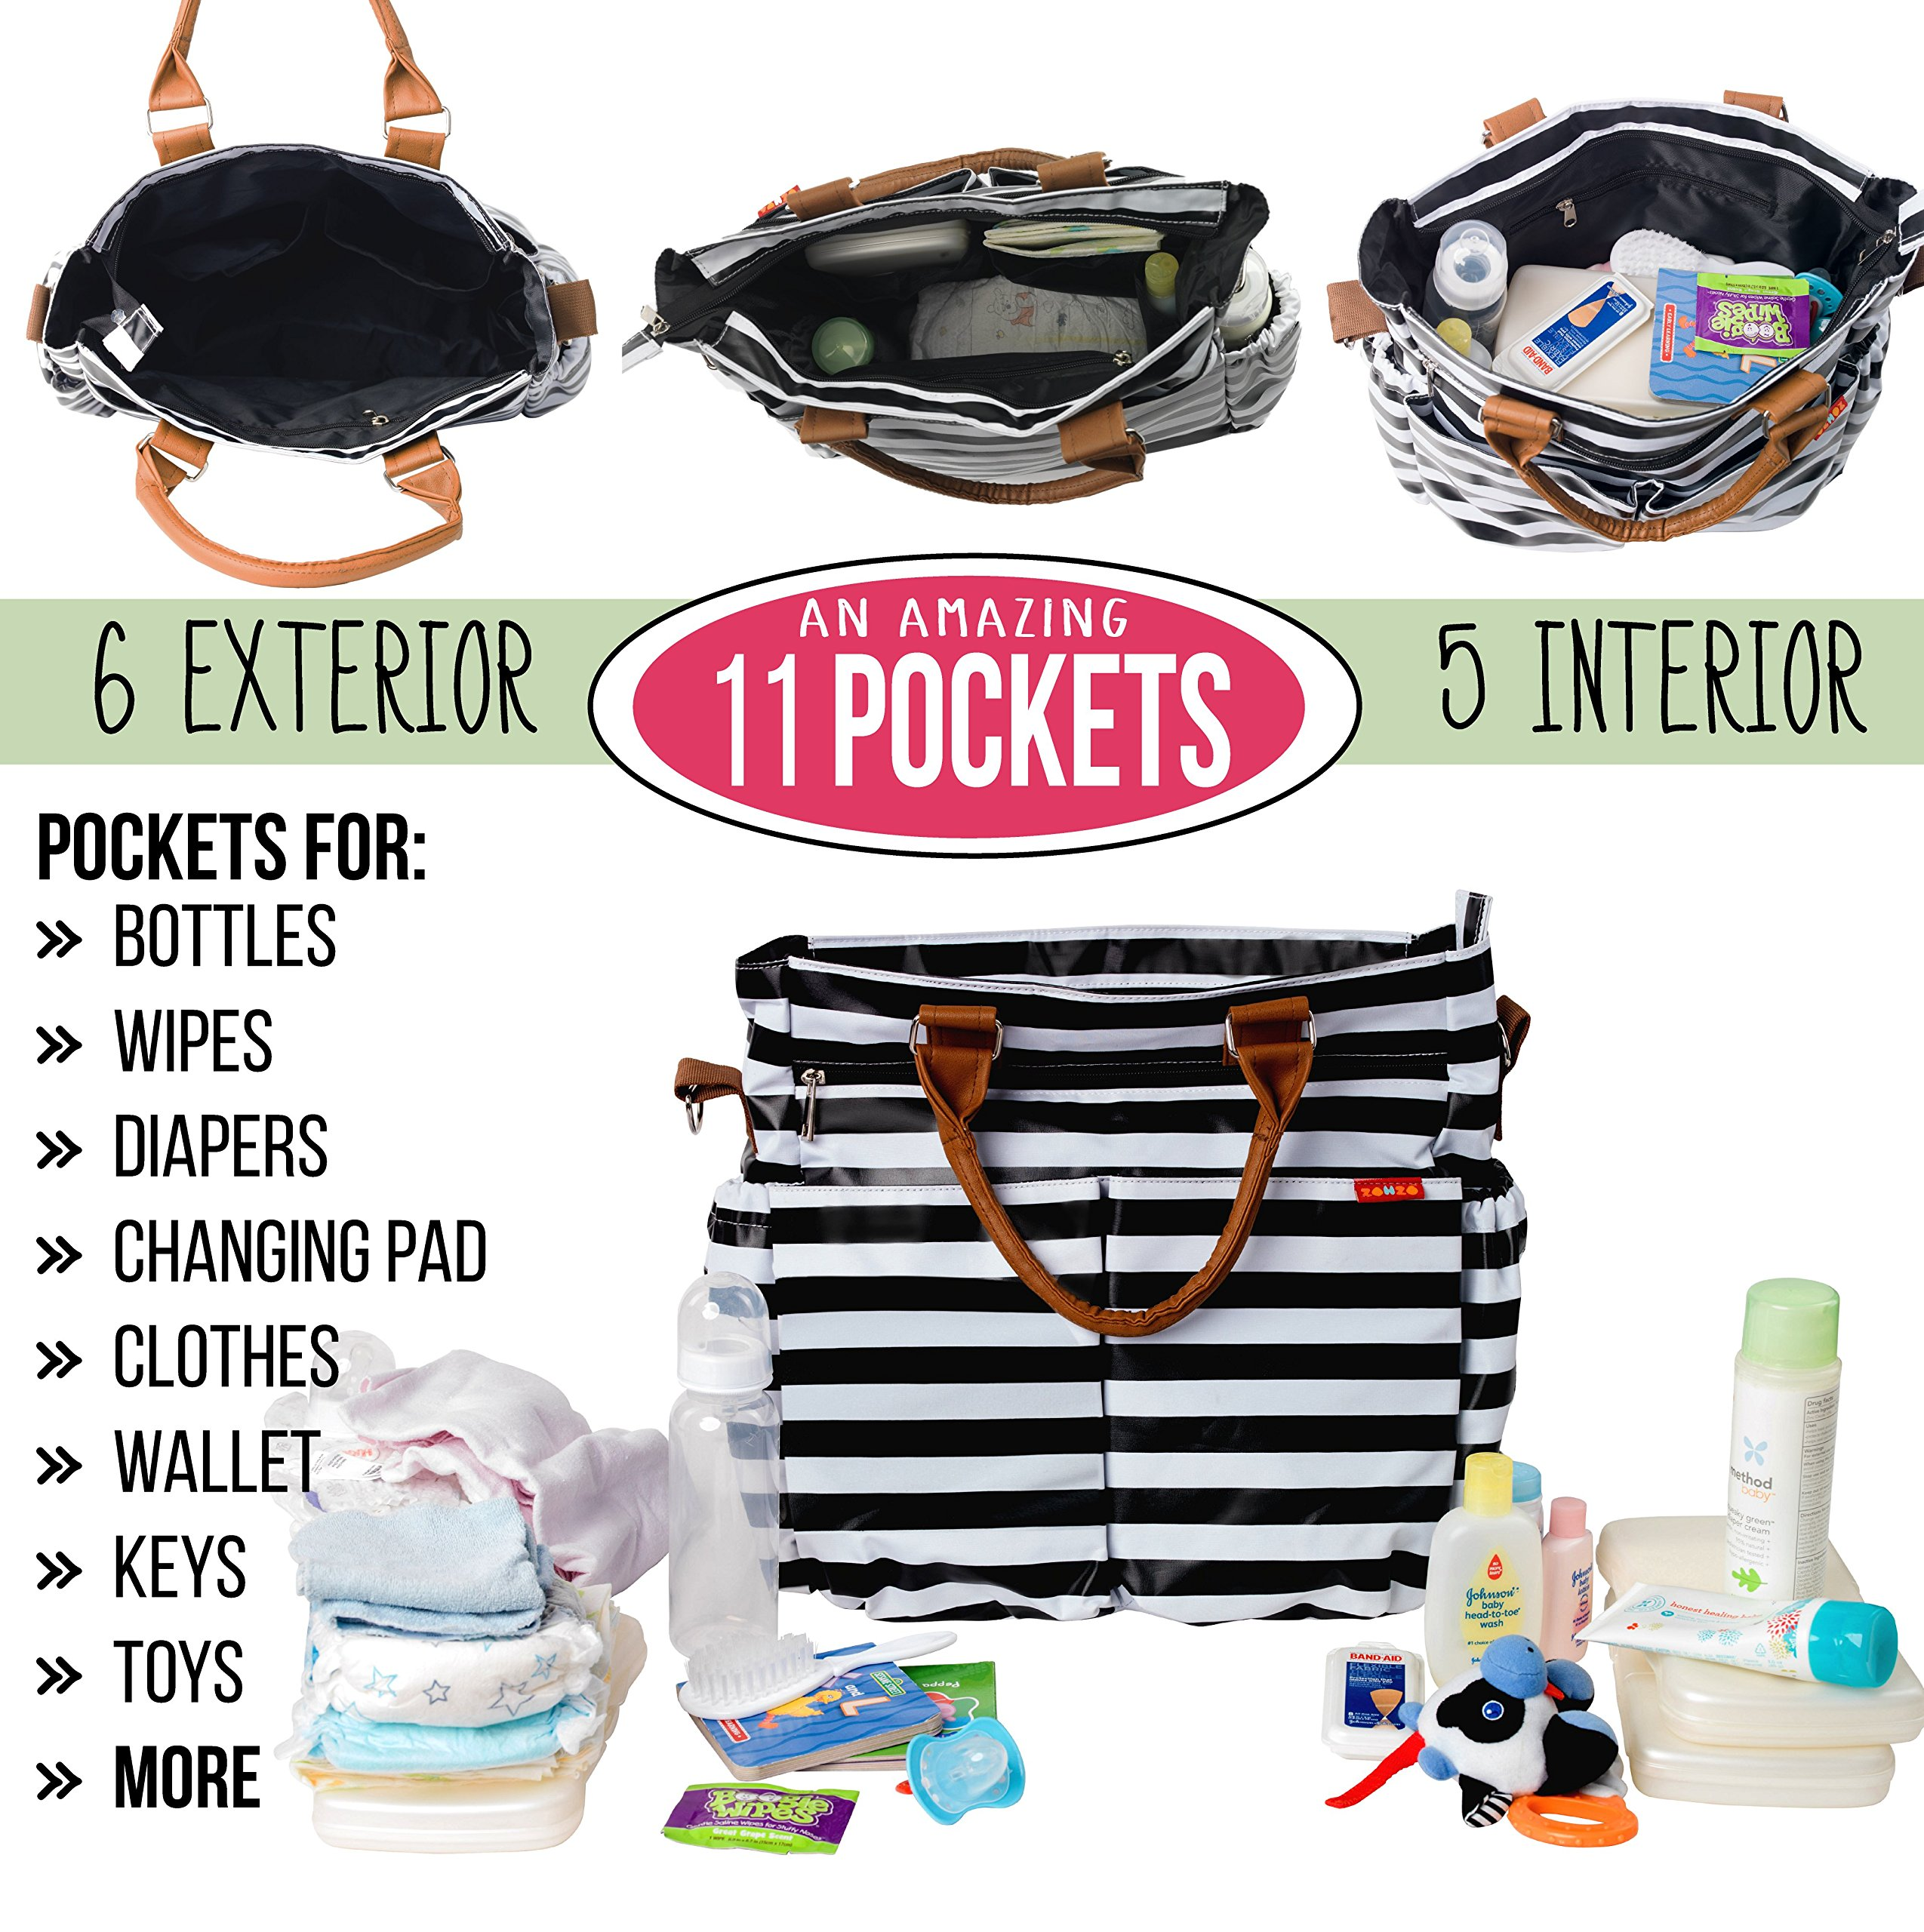 Diaper Bag Tote by Zohzo - Diaper Tote Bag With Changing Pad, Insulated Pockets, Wipes Pocket, Waterproof Material, Stroller Straps, and Shoulder Strap Diaper Bags